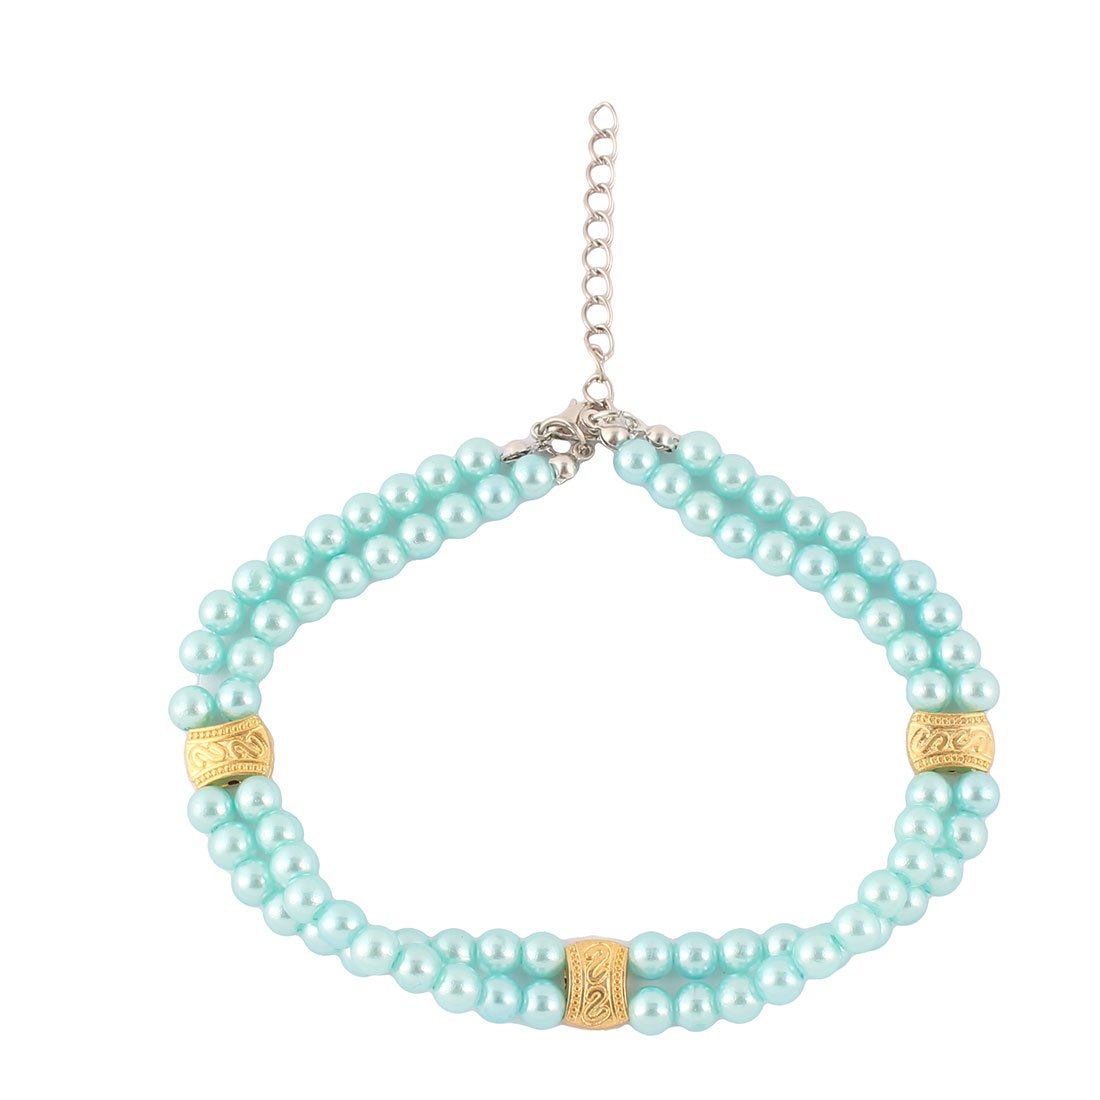 Festival Party Dog Metal Chain Handmade Beads Design Adjustable 2 Rows Pet Necklace Collar Blue